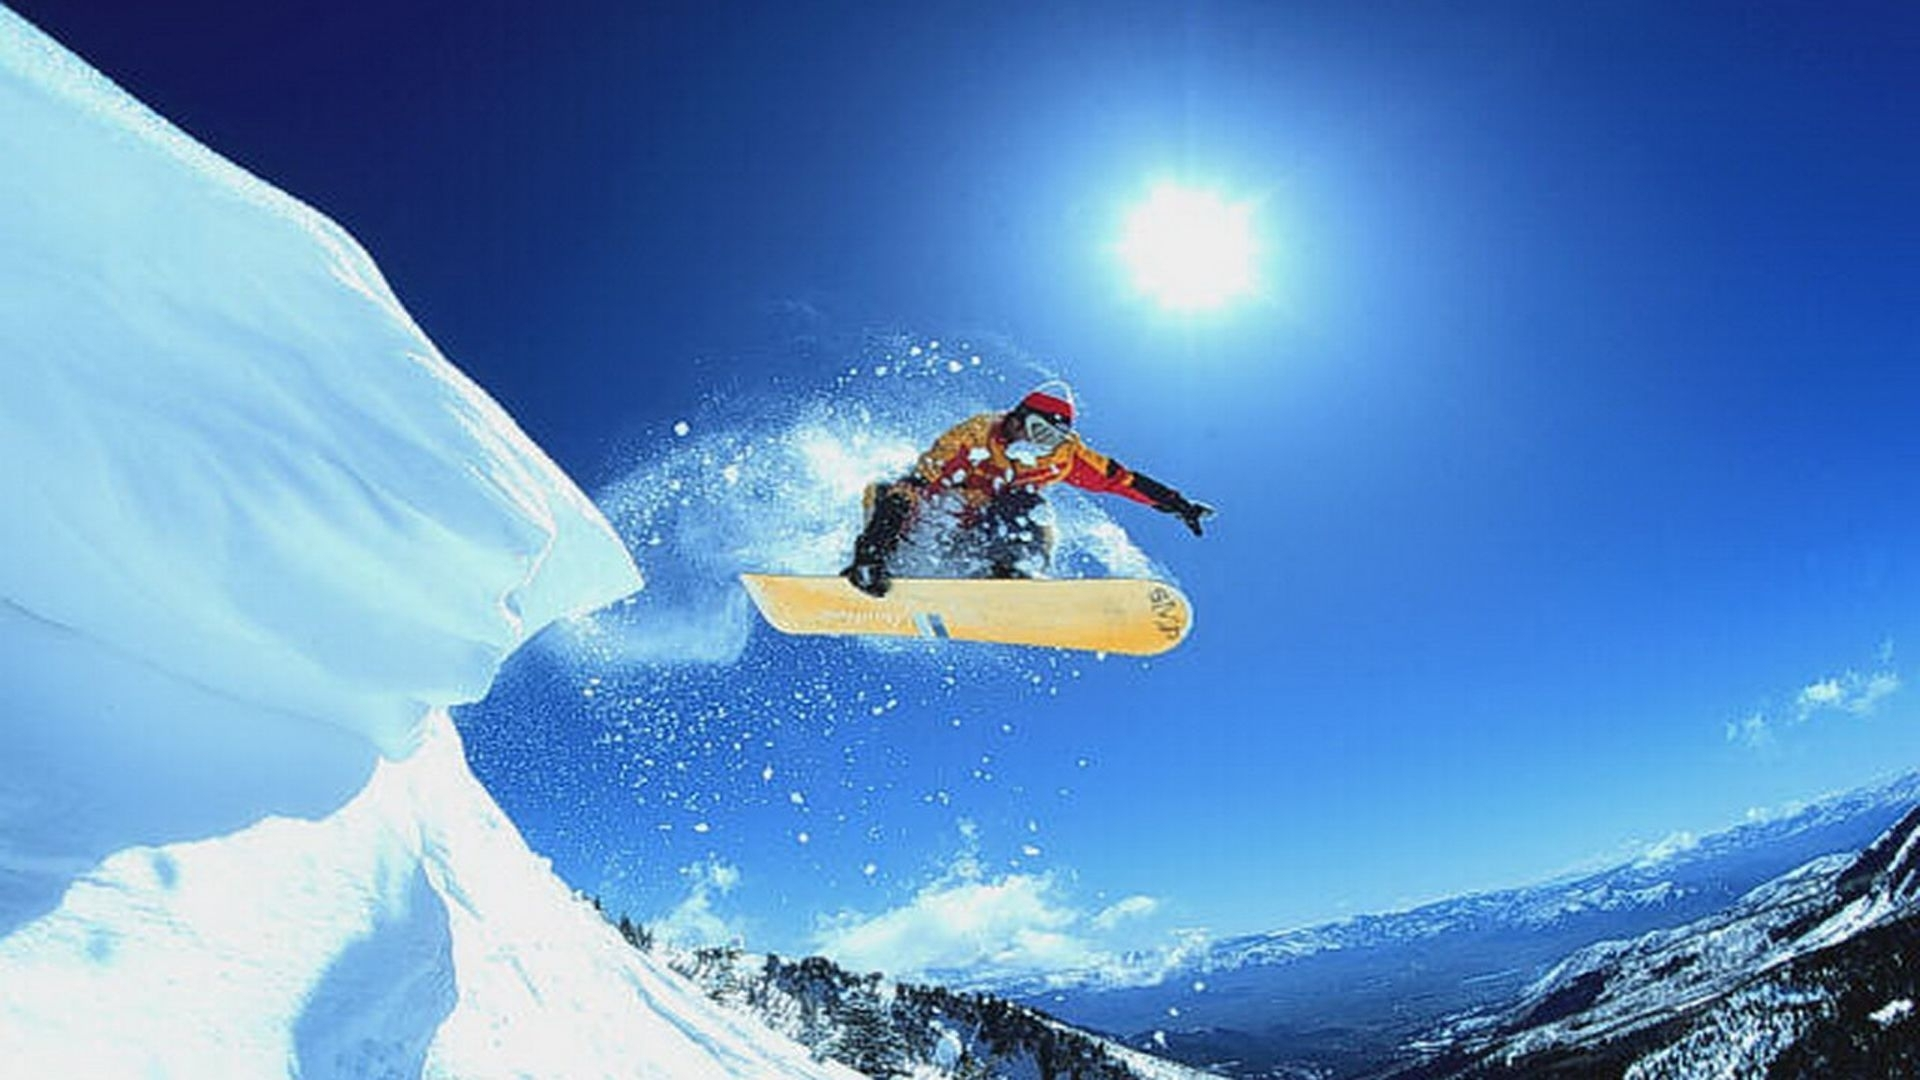 snowboarding mountain wallpaper high resolution free download images